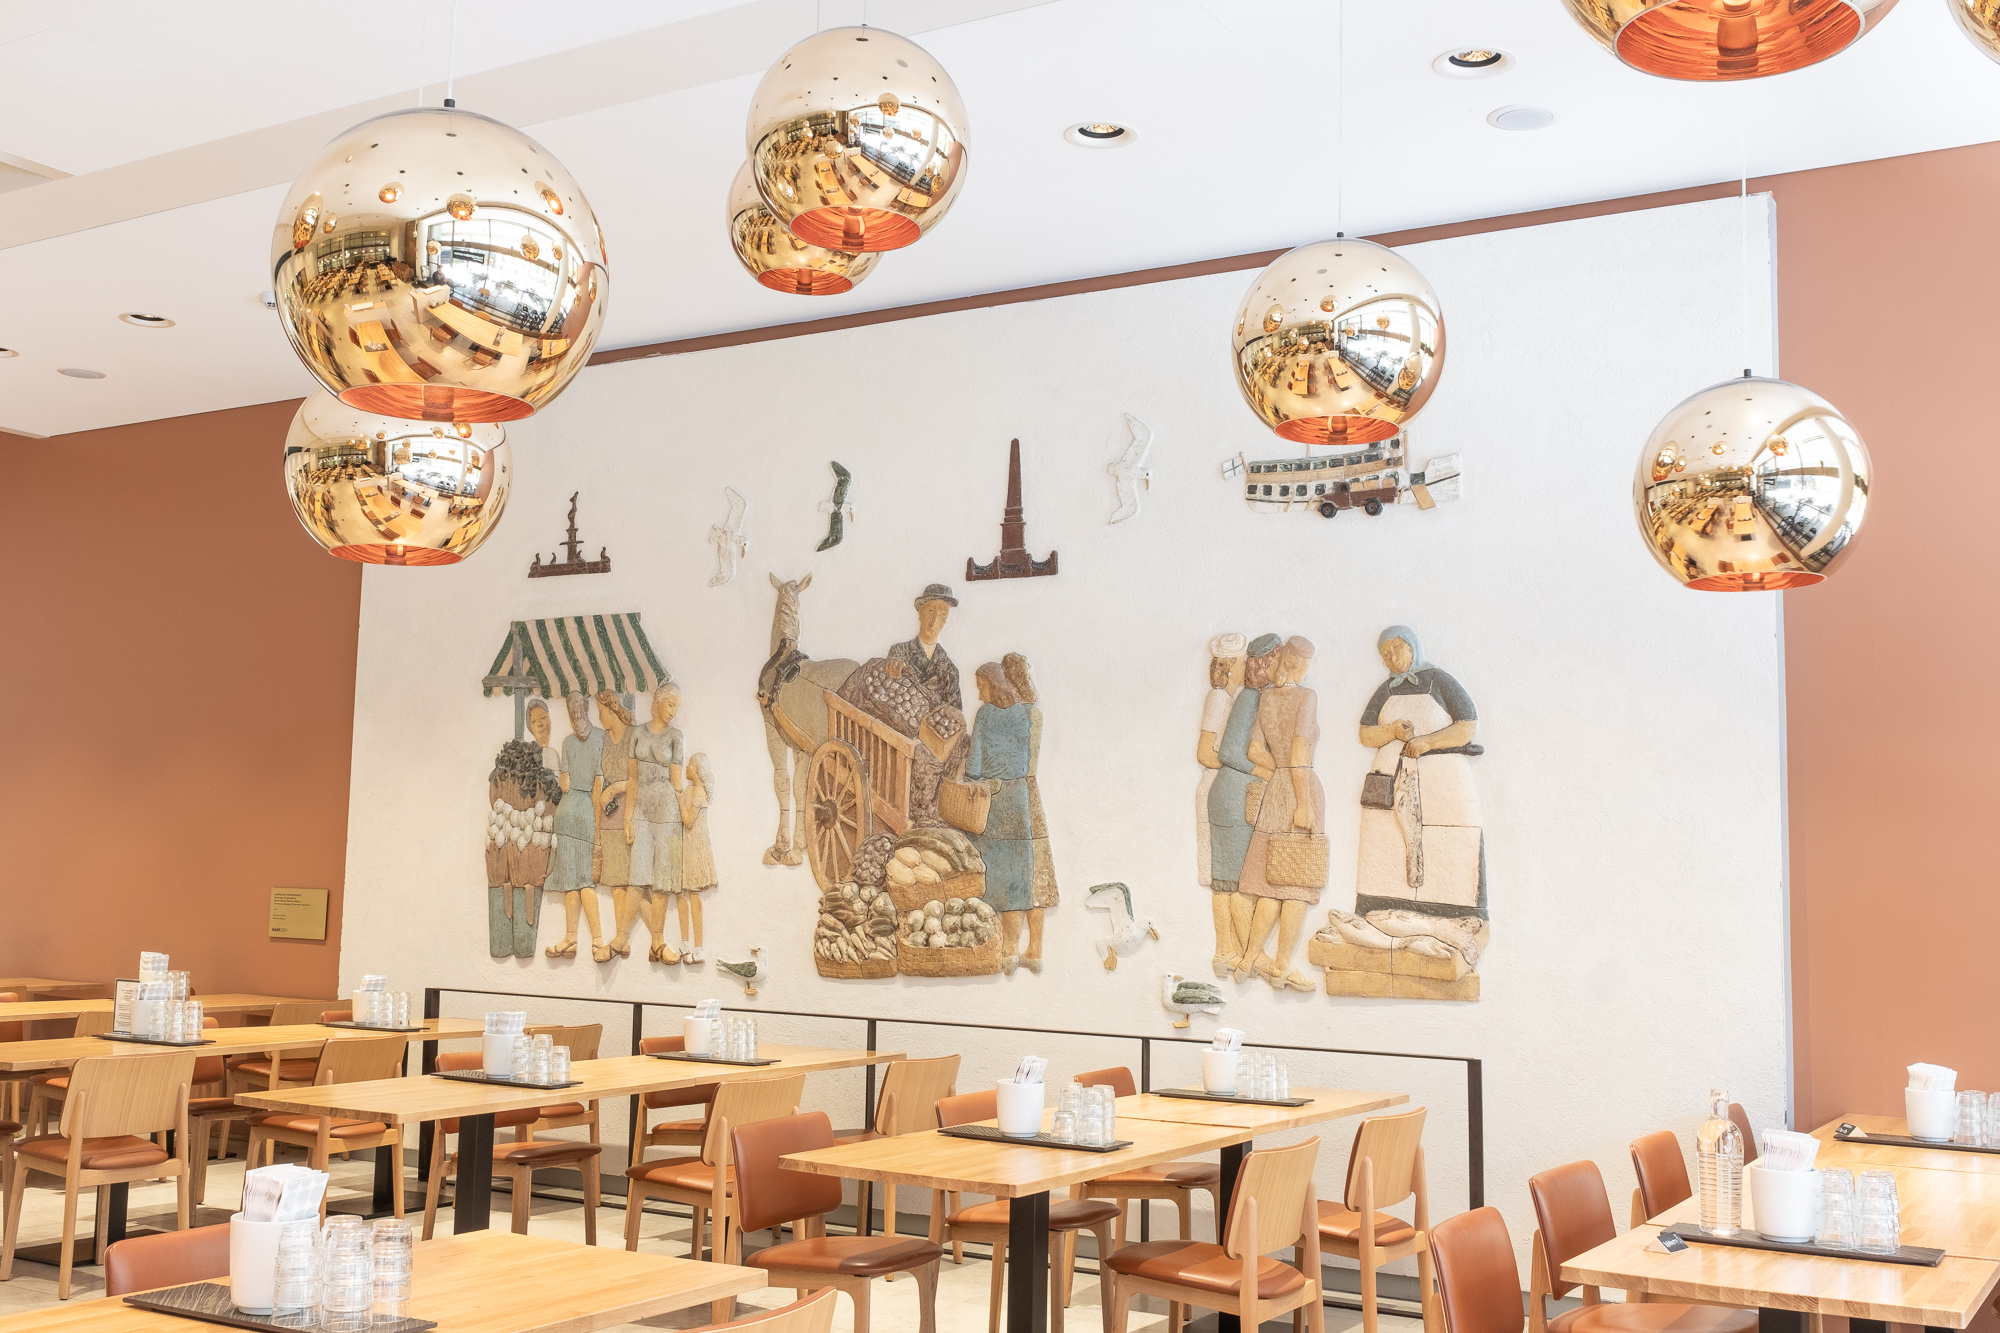 Characteristic round-shaped lamps are in the restaurant, which reflect the restaurant's interior. A relief by Schilkin, depicting the Market Square and its seagulls, is on the wall.